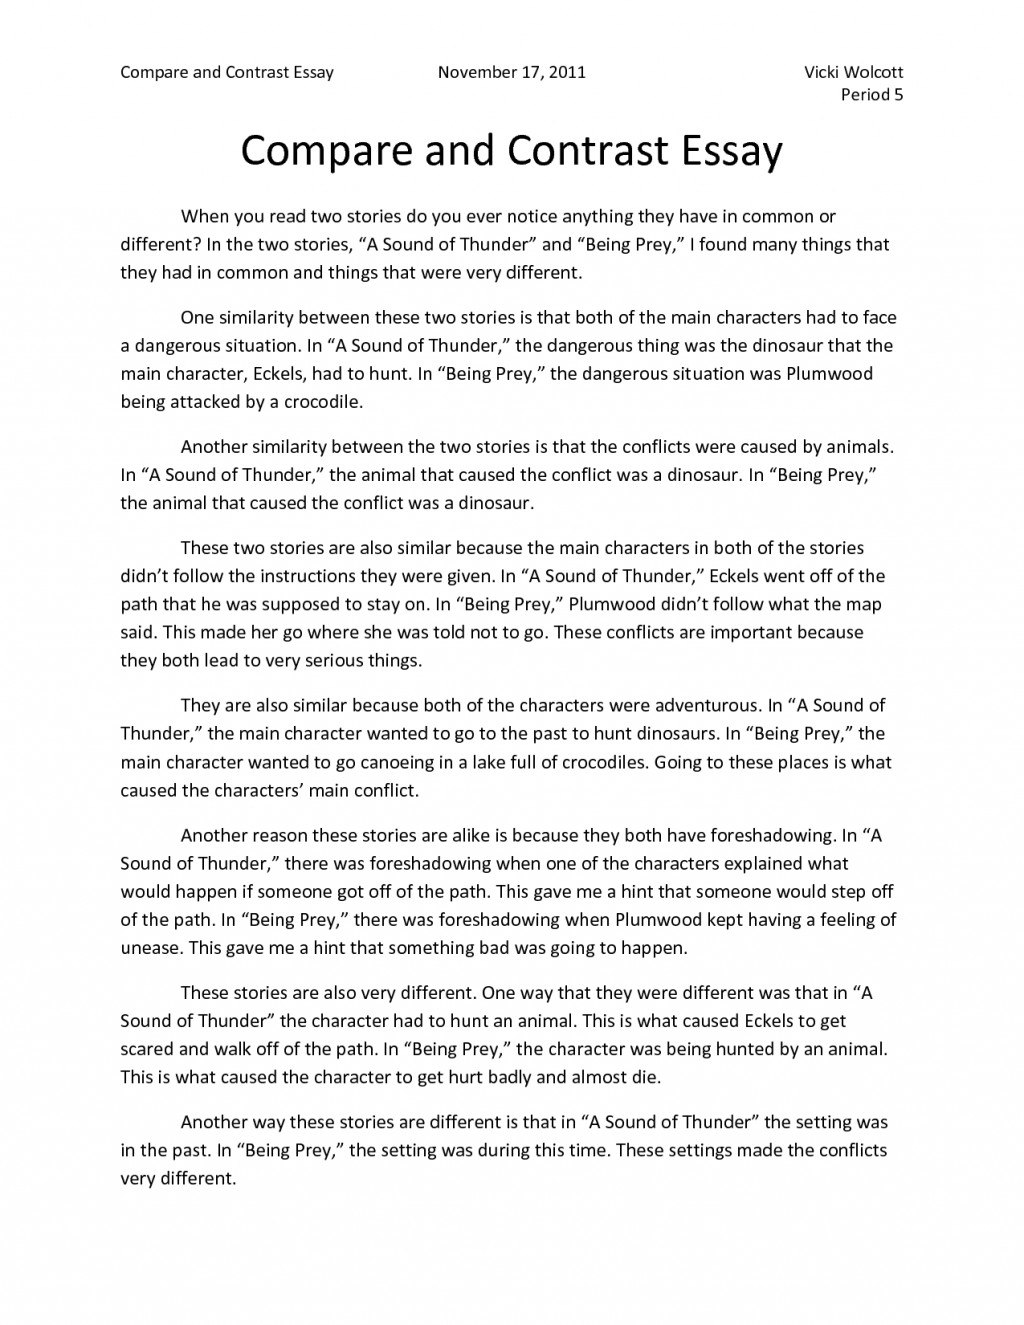 004 Essay Example Compare And Contrast Gallery Template Drawing Art Throughout College Examples Introduction Question Scholarship Free Edexcel Conclusion Frightening Topics For Students Rubric 4th Grade Ideas 7th Large